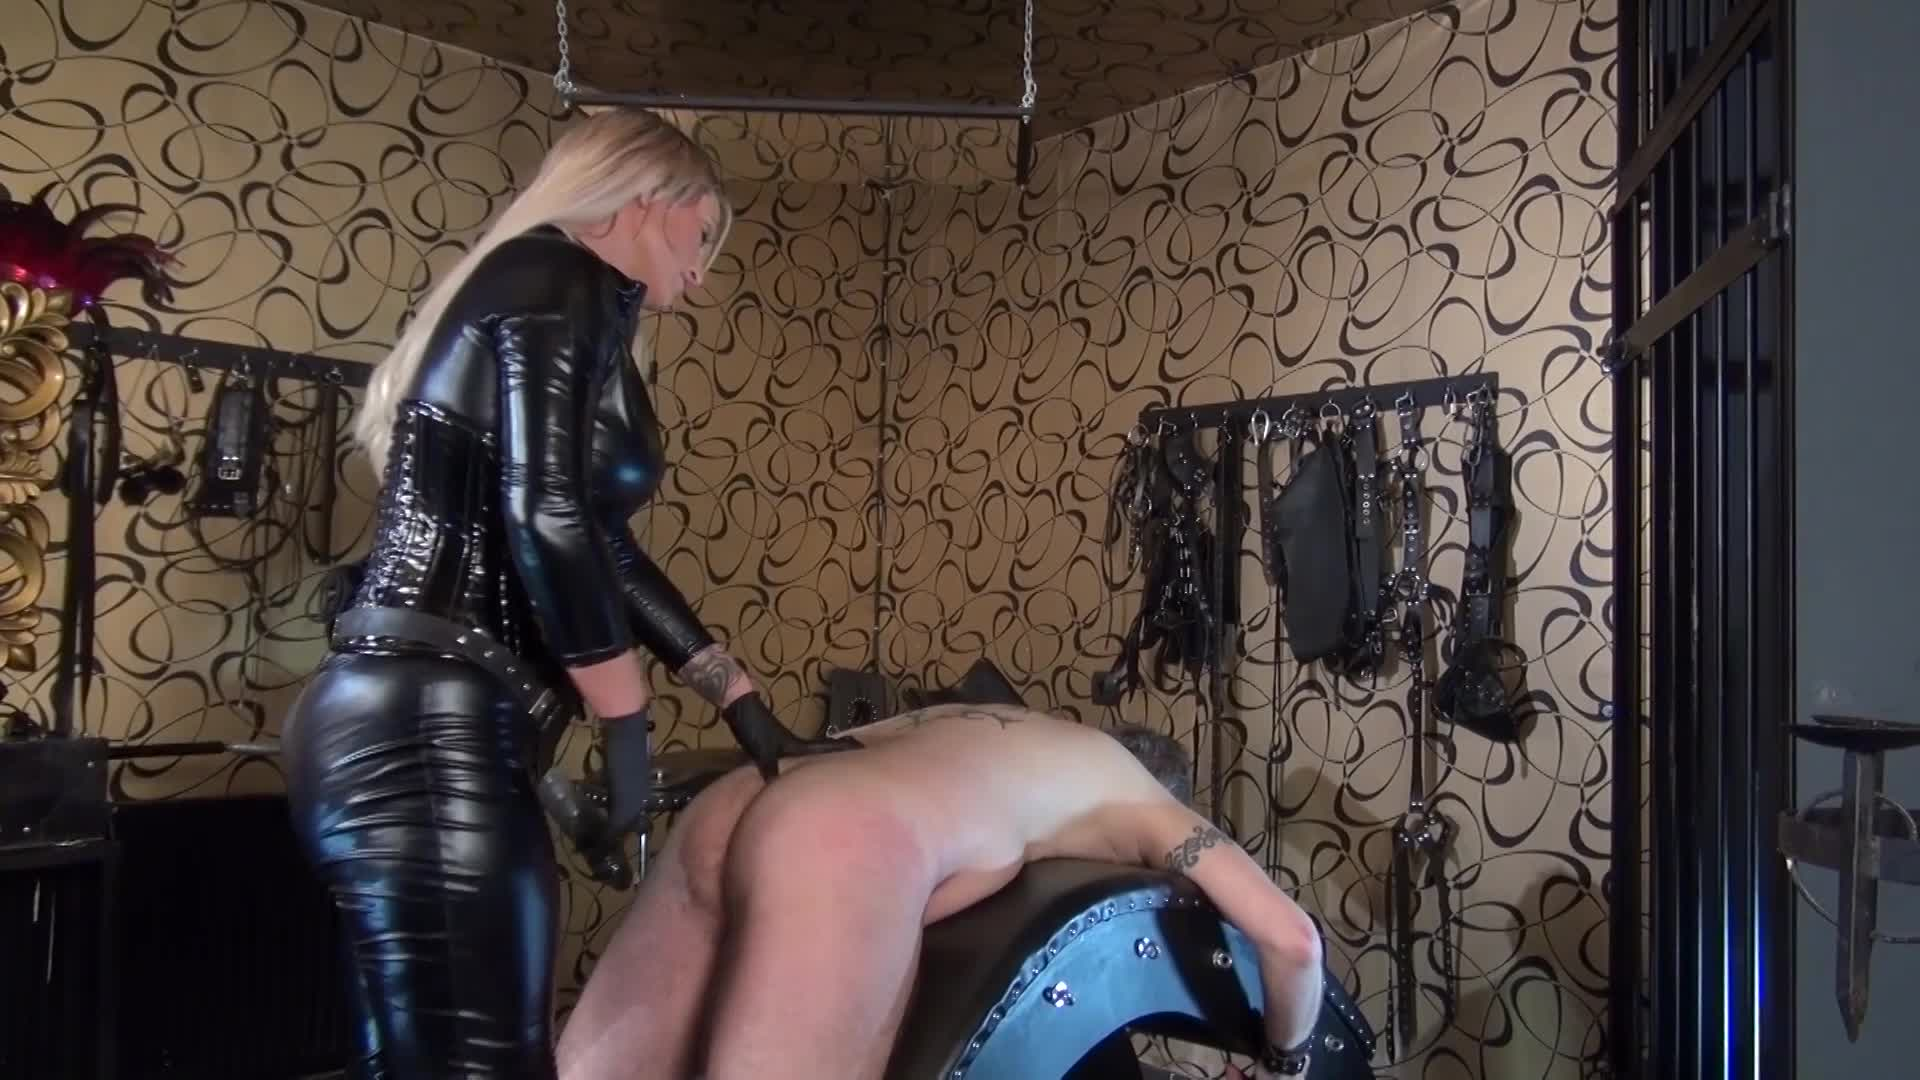 Deep Throat - Welcome to Calea Toxic - Strap-On Training Session on german porn furry femdom - k2s.tv